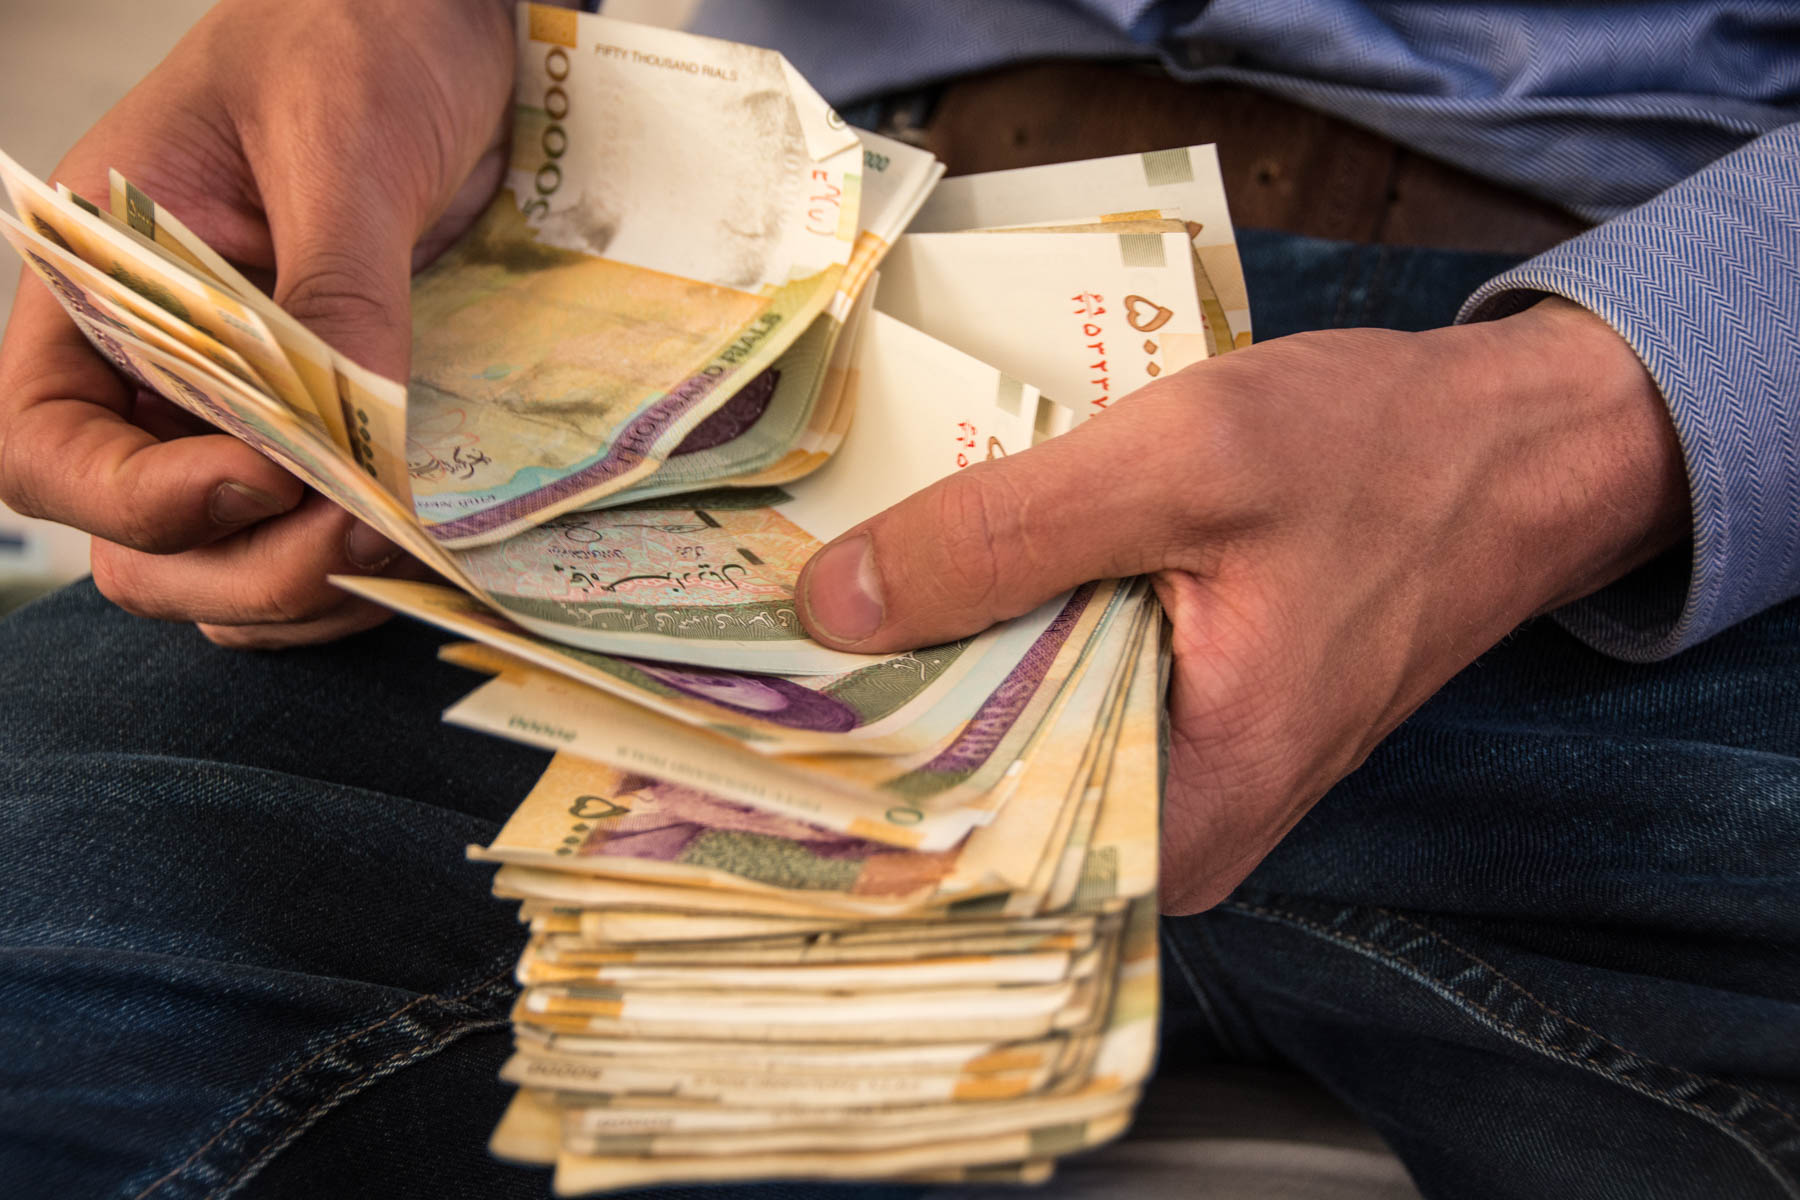 Iranian rials, a struggle when carrying cash while traveling.